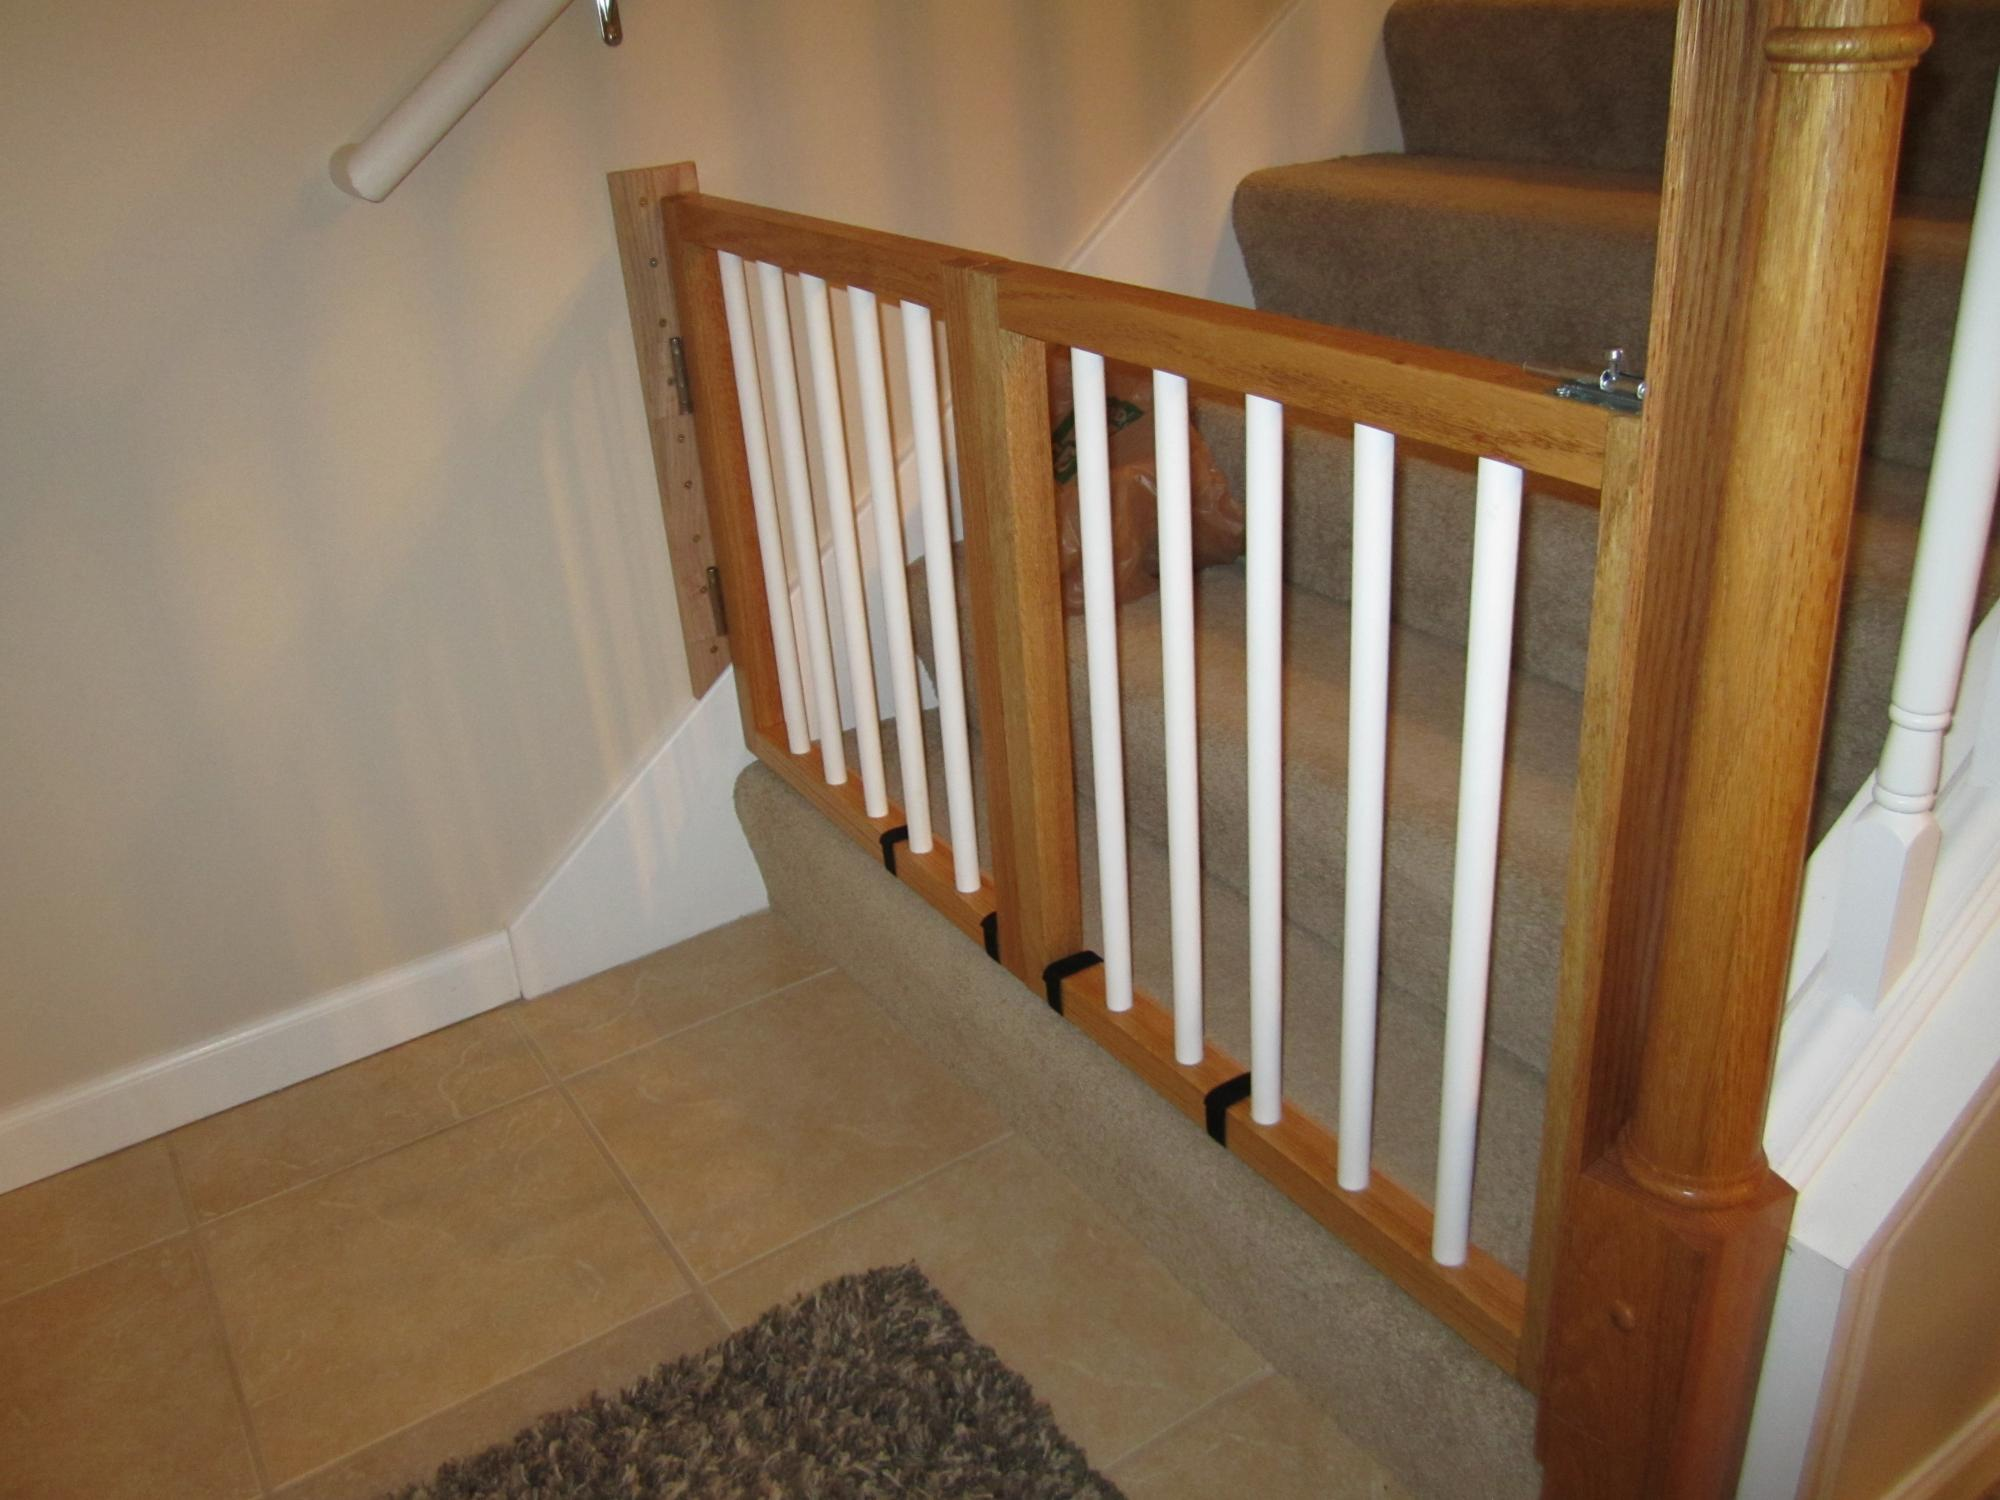 Baby Gate Design Help - Router Forums